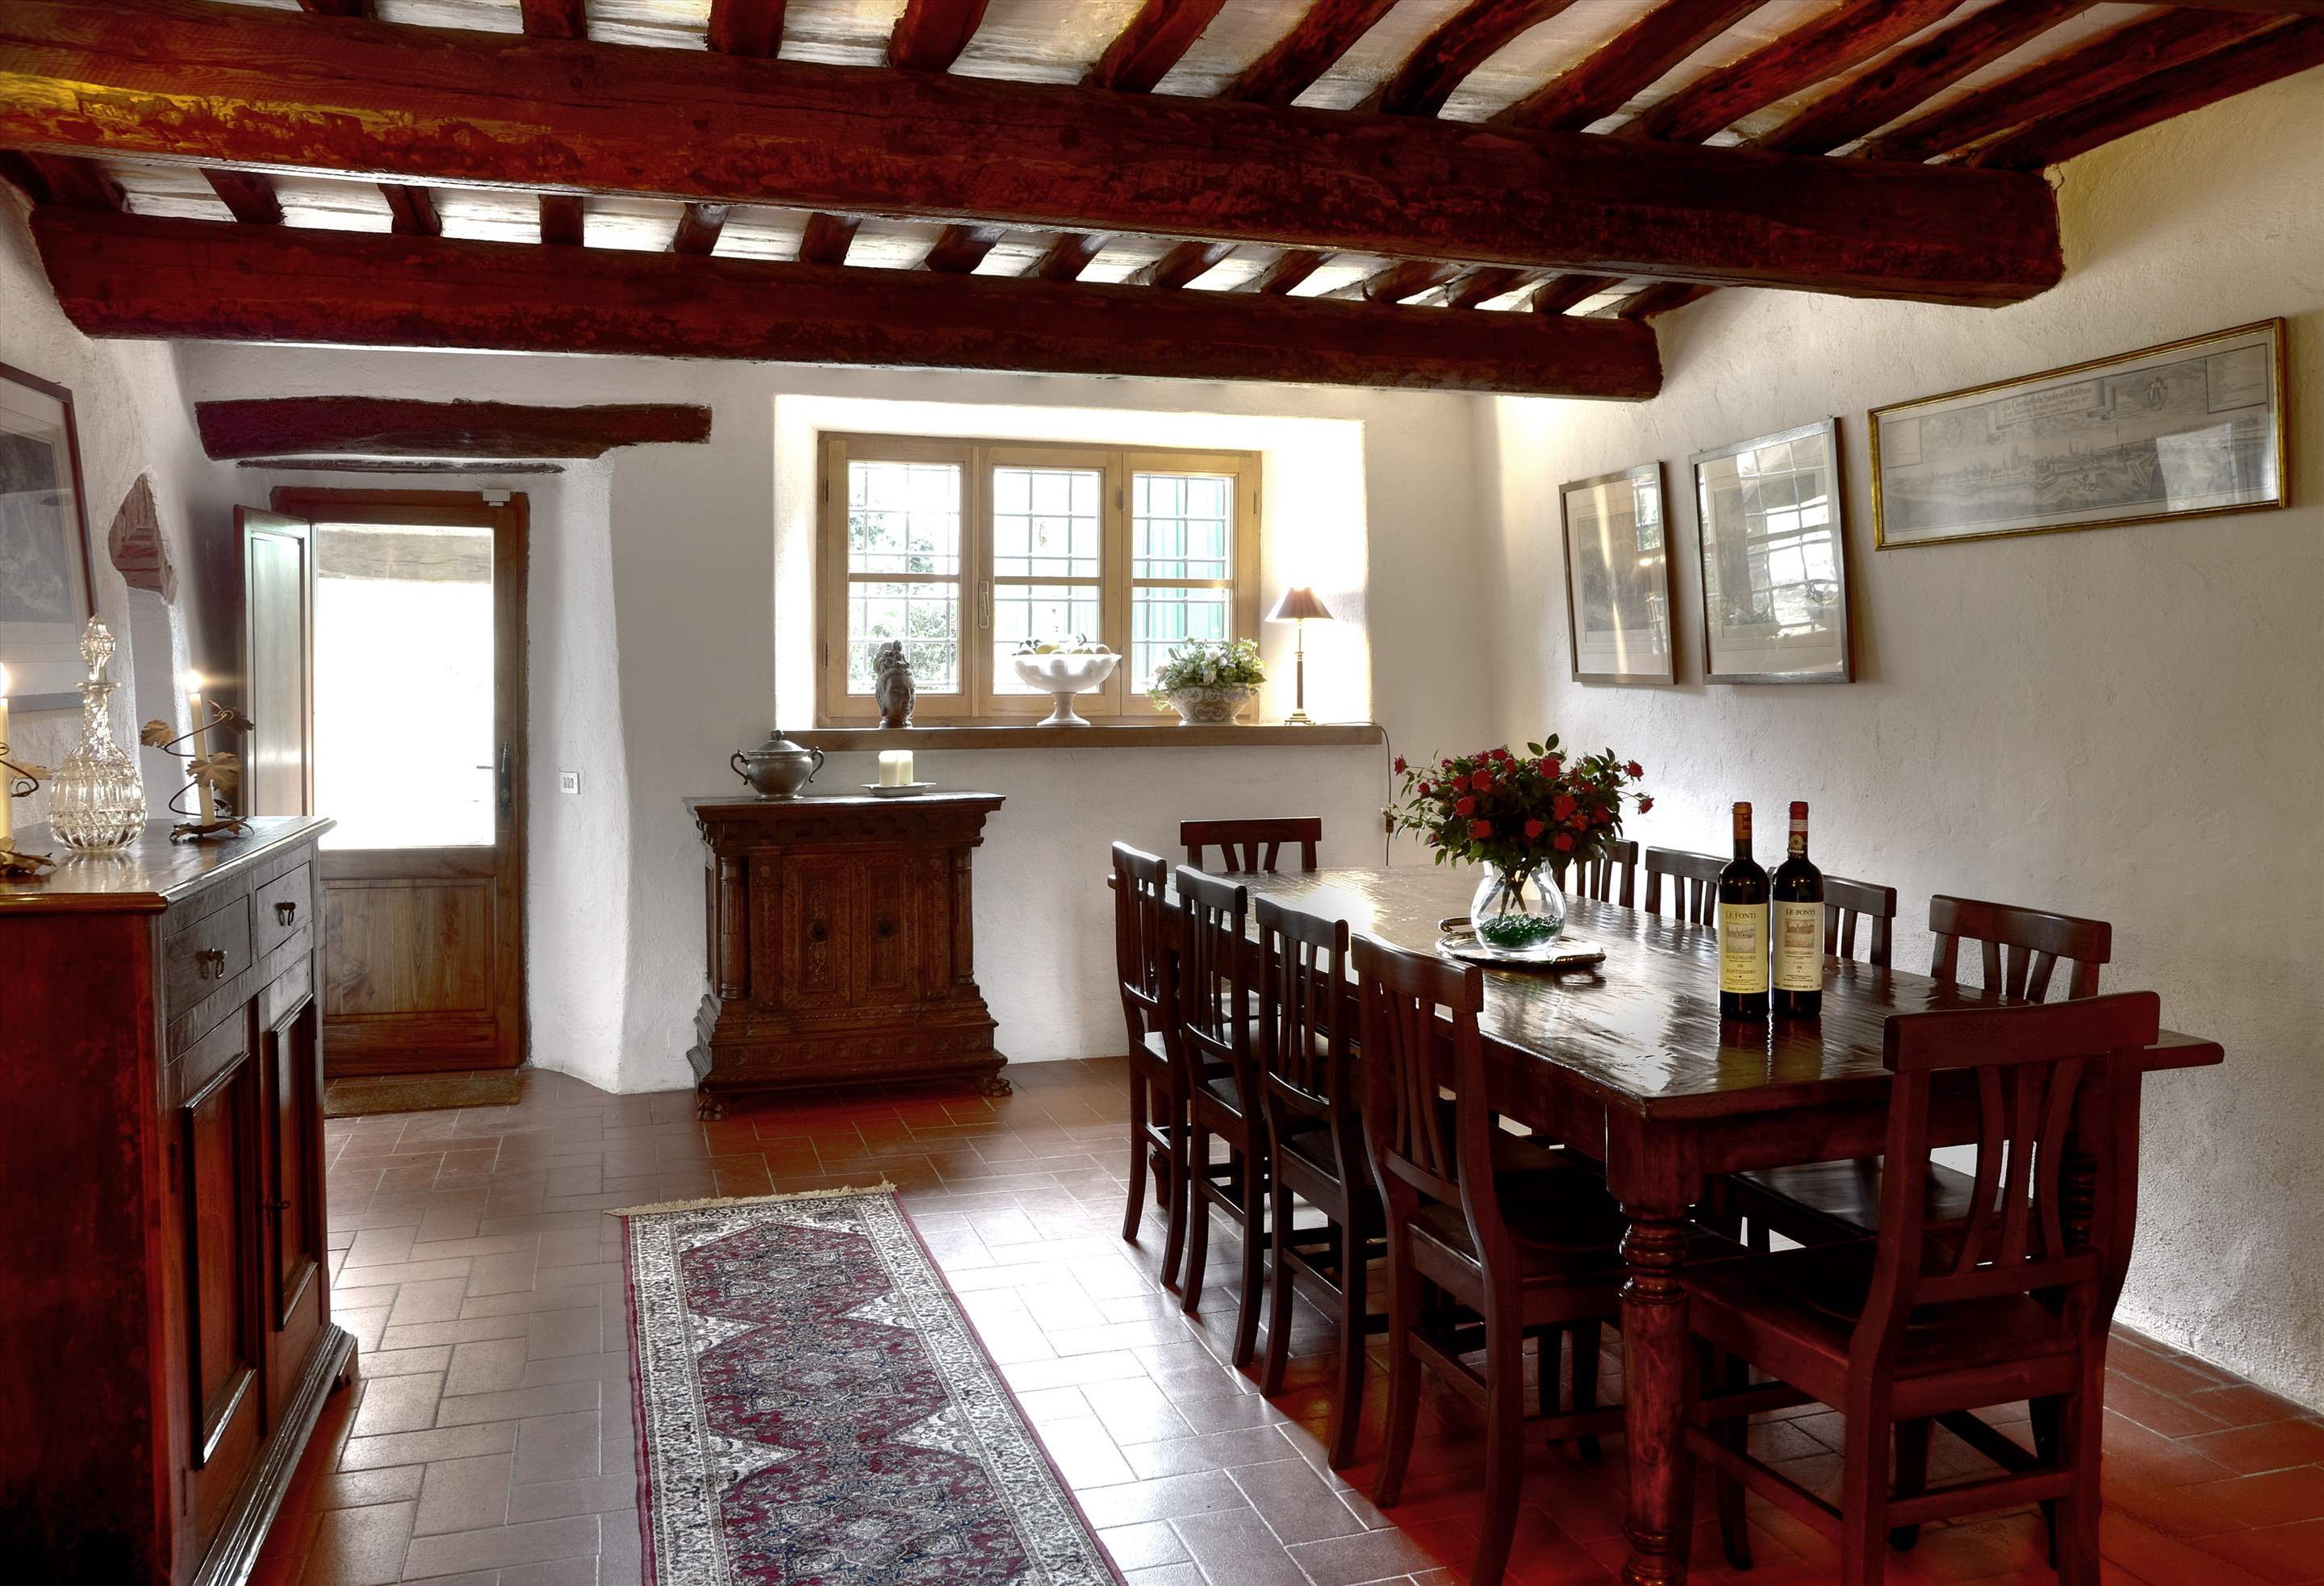 Villa Campana, 5 bedroom villa in Chianti & Countryside, Tuscany Photo #4